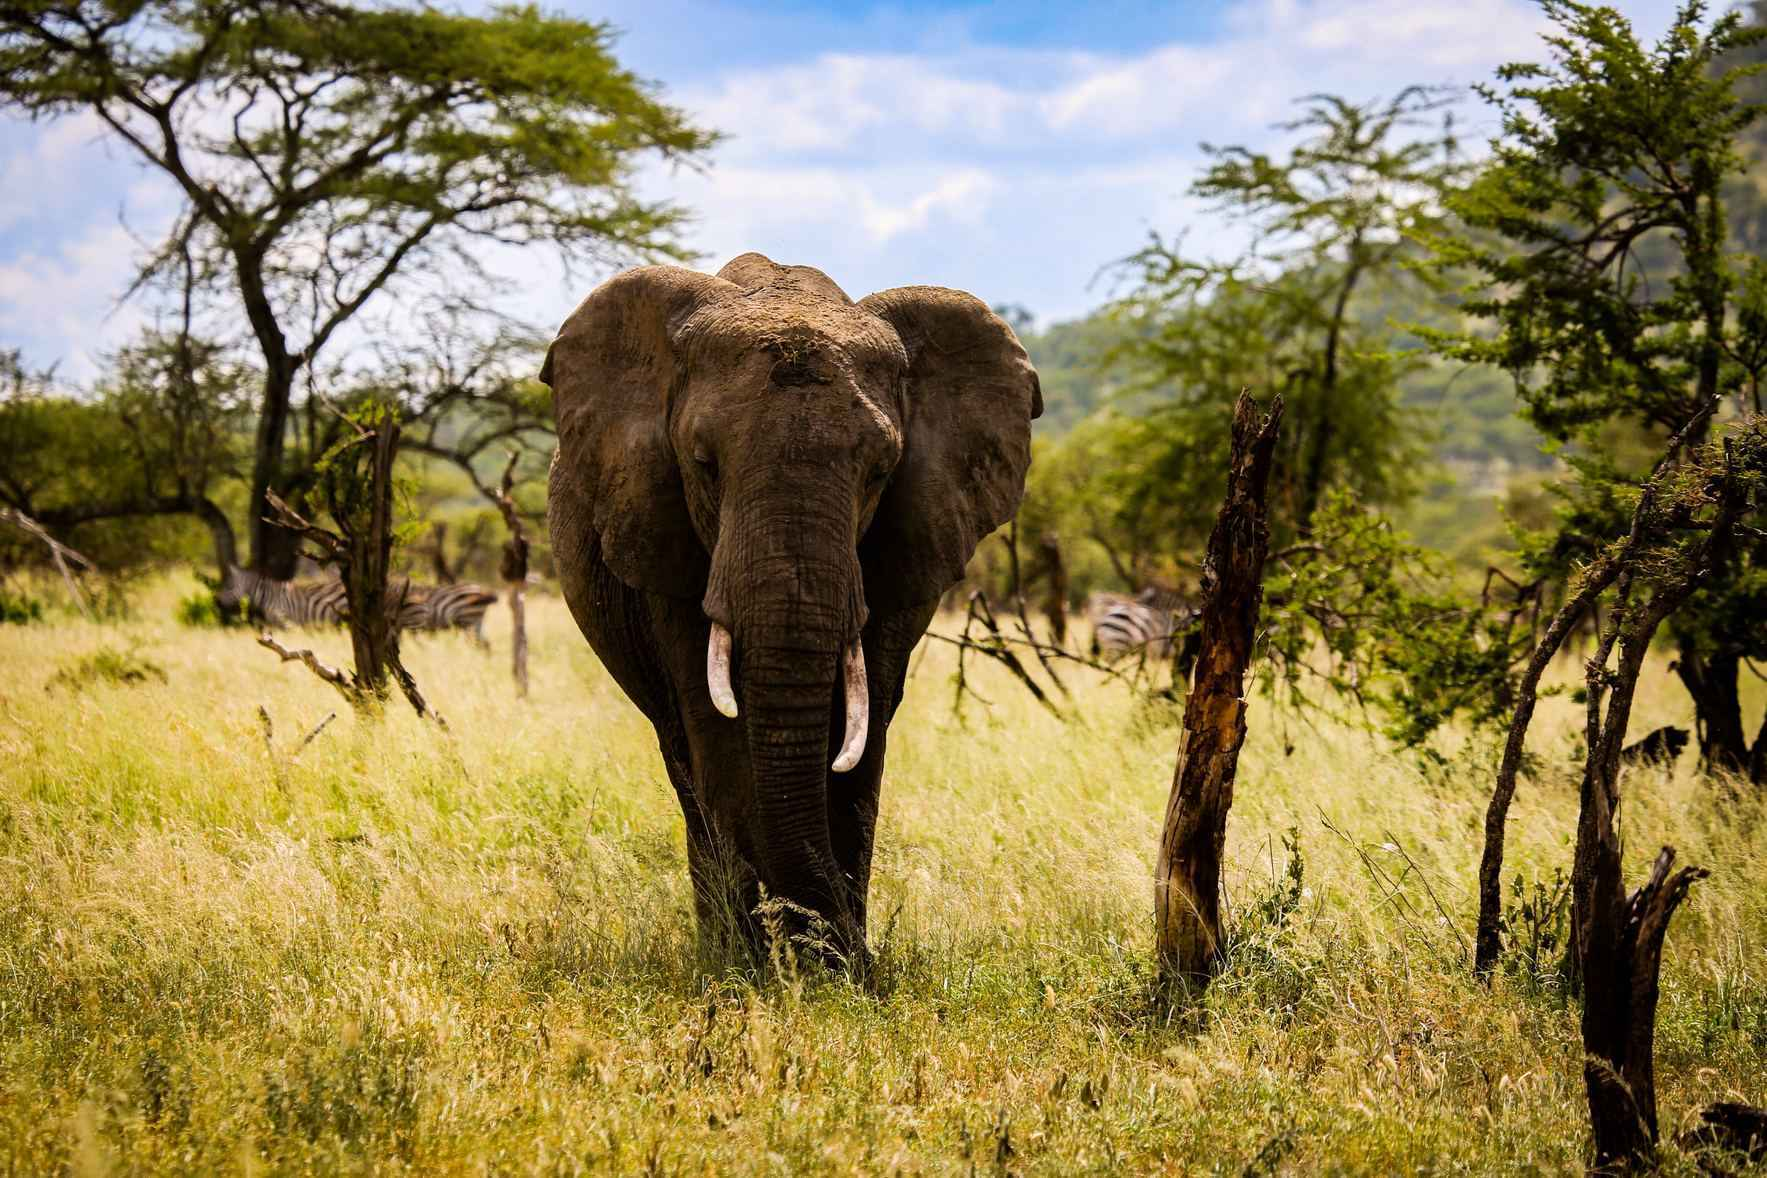 We need support to track down the culprits behind the killing of elephants and help law enforcement agencies rein them in before they strike again. image